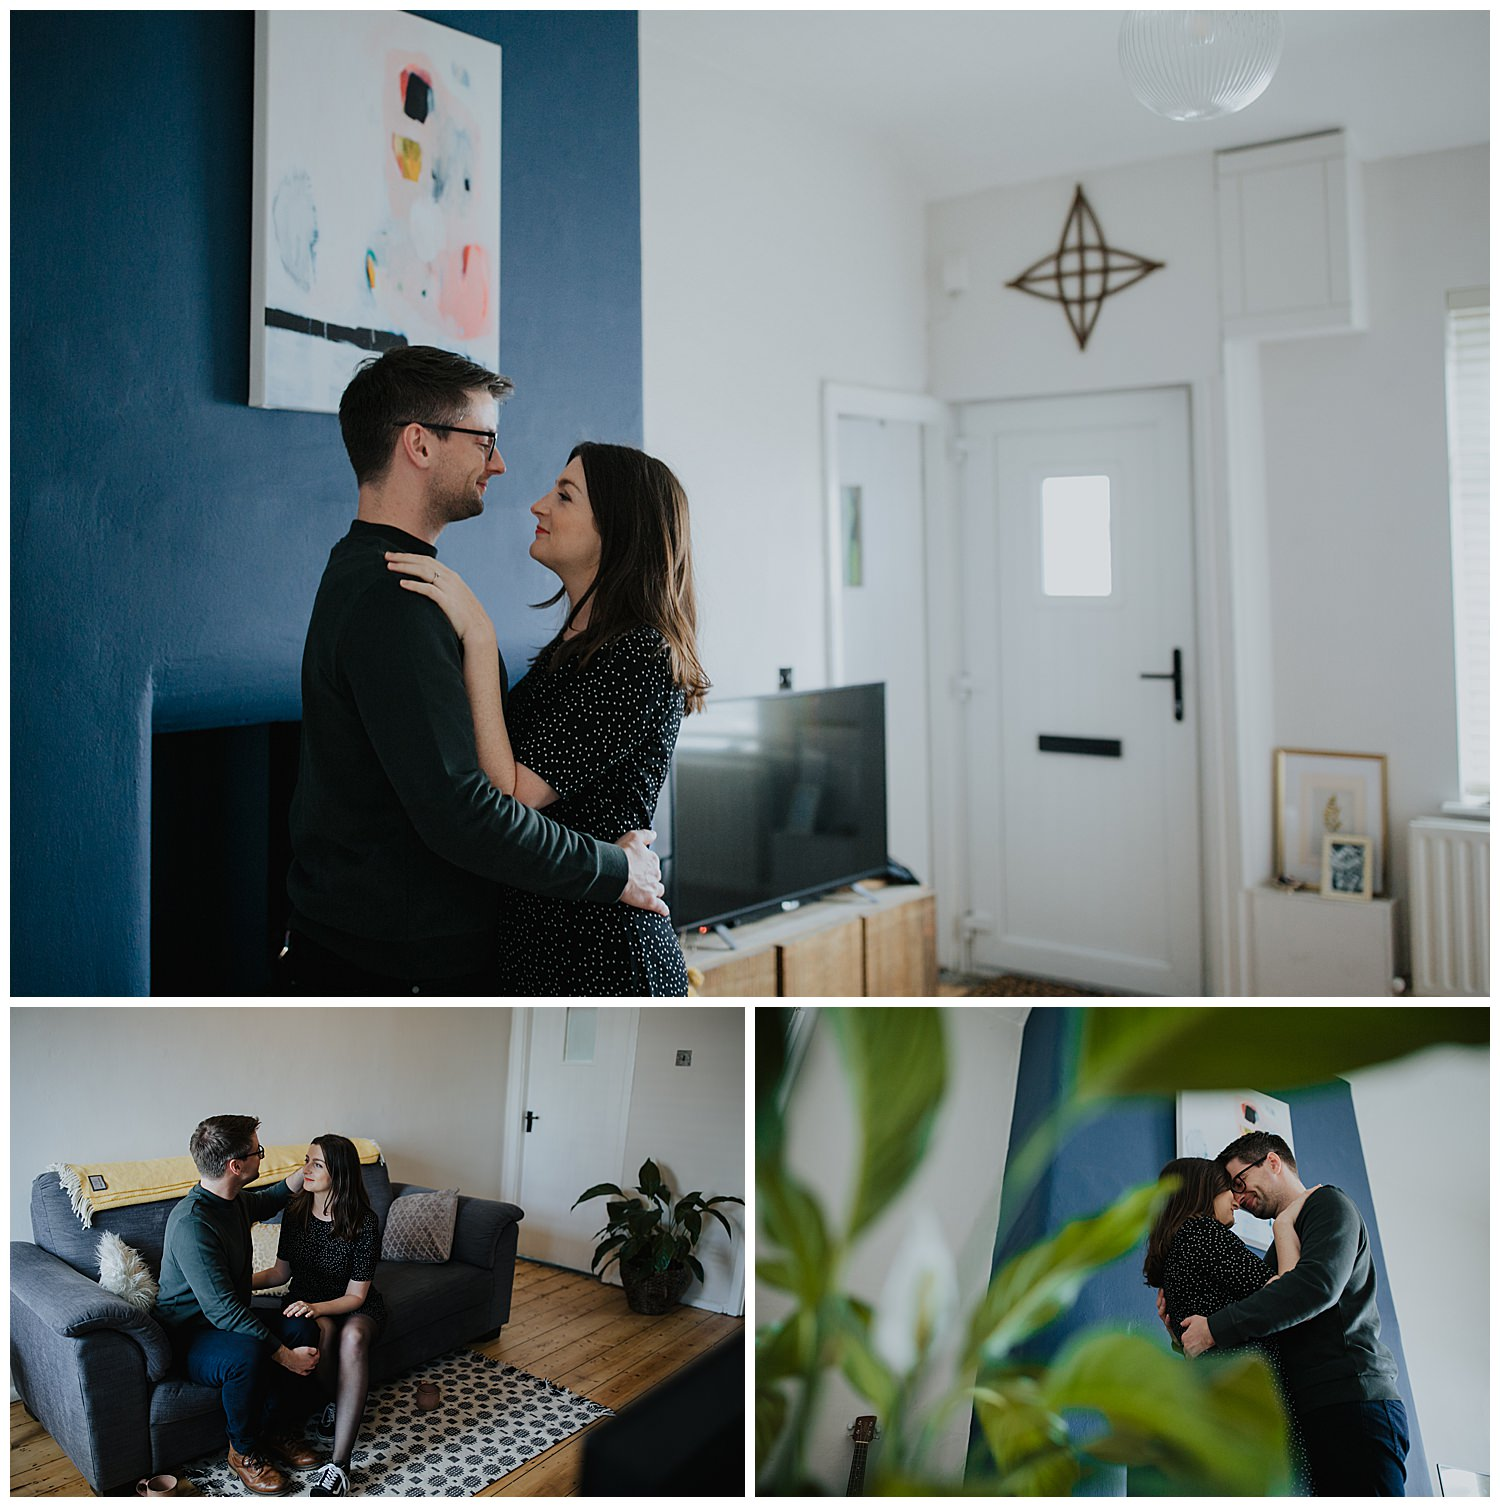 j-l-house-engagement-session-dublin-wedding-photographer-livia-figueiredo_6.jpg